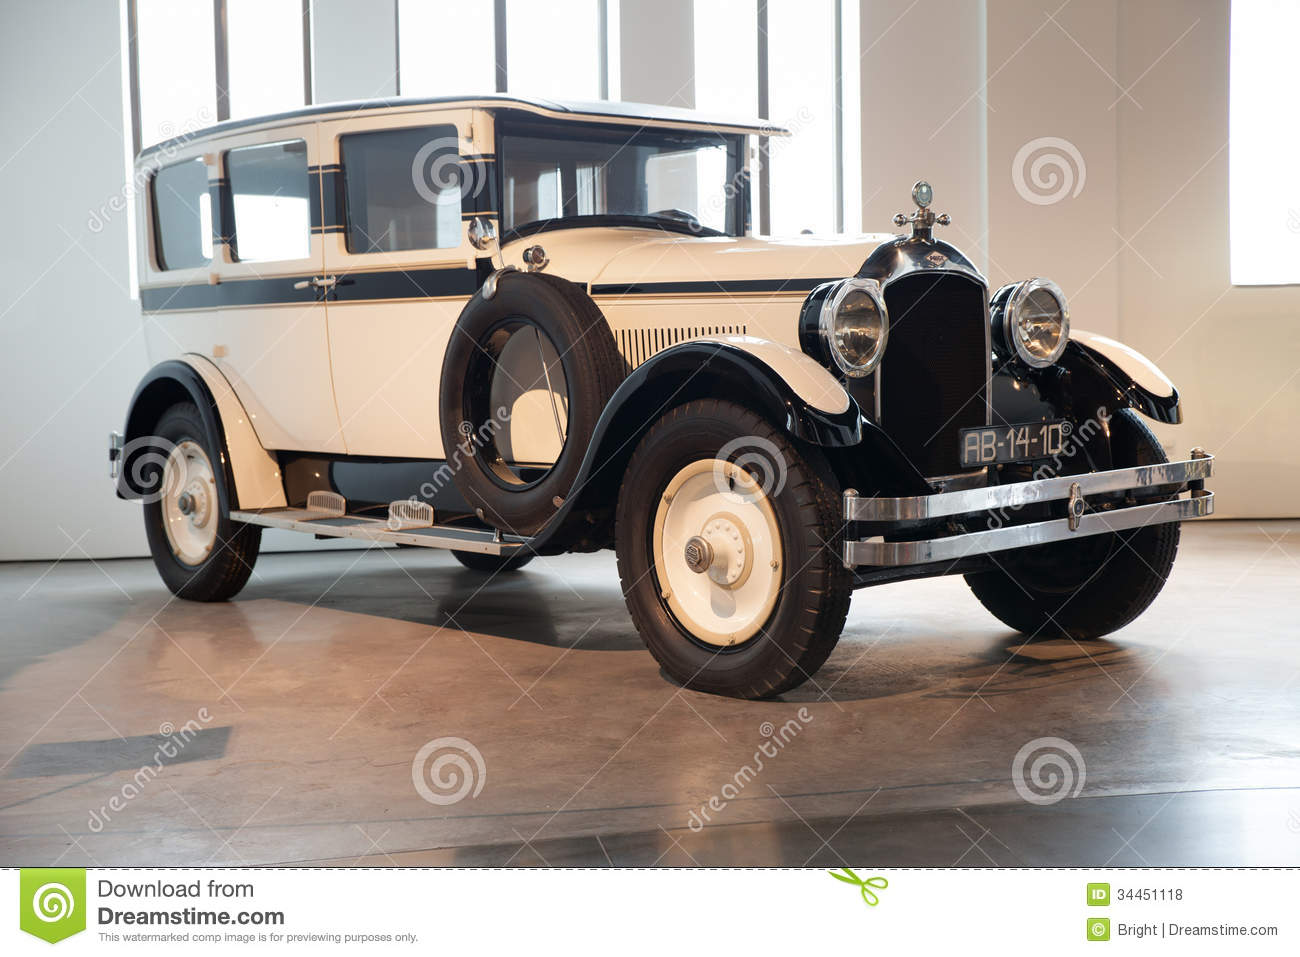 GrahamPaige Cavalier Editorial Stock Photo Image - Classic car museums in usa